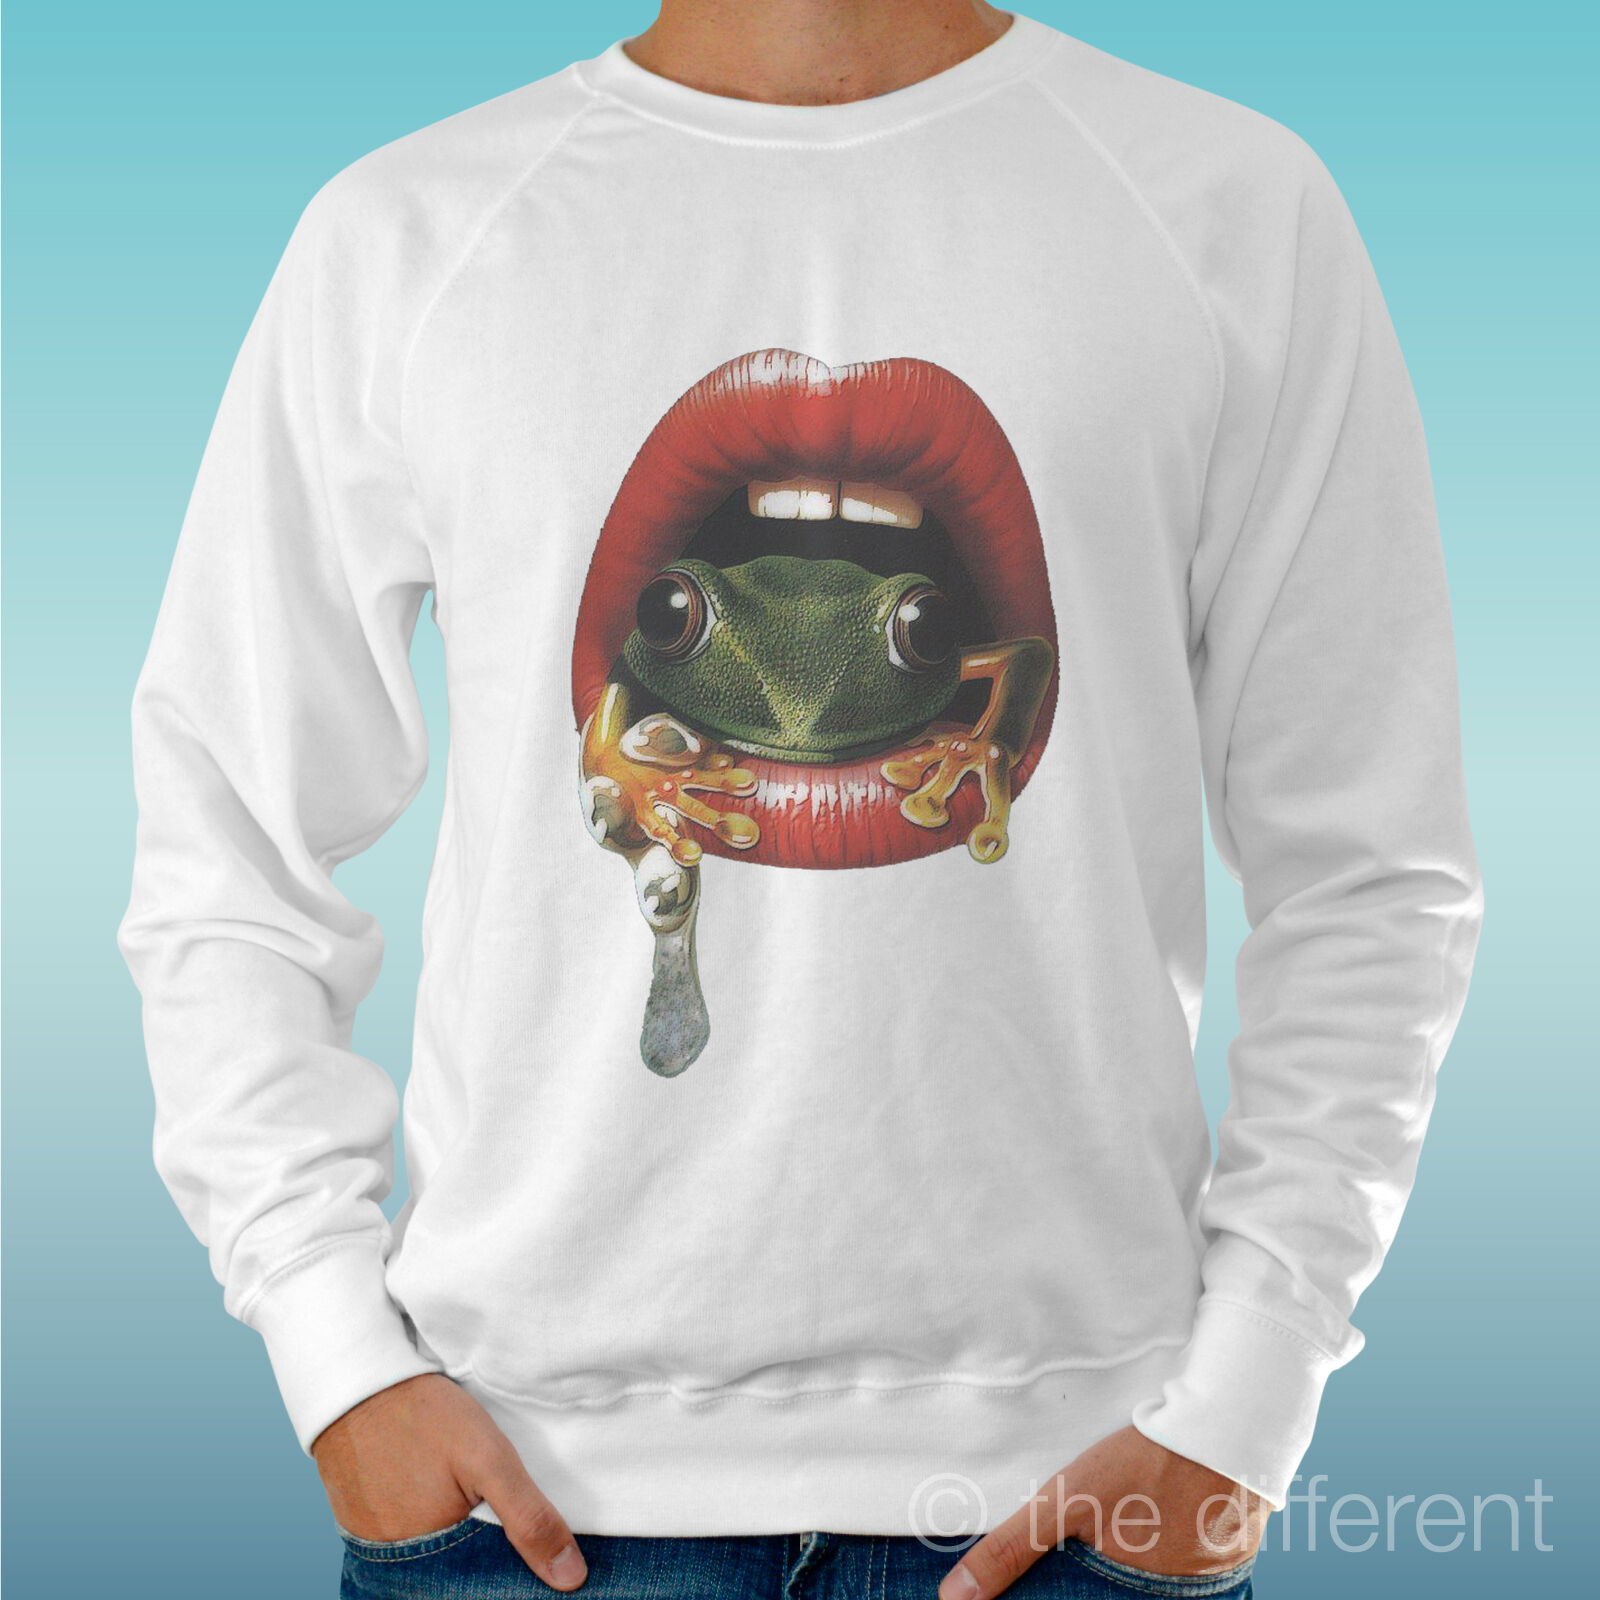 MEN'S SWEATSHIRT LIGHT SWEATER WHITE   MOUTH FROG MOUTH FROG   ROAD TO HAPPINESS